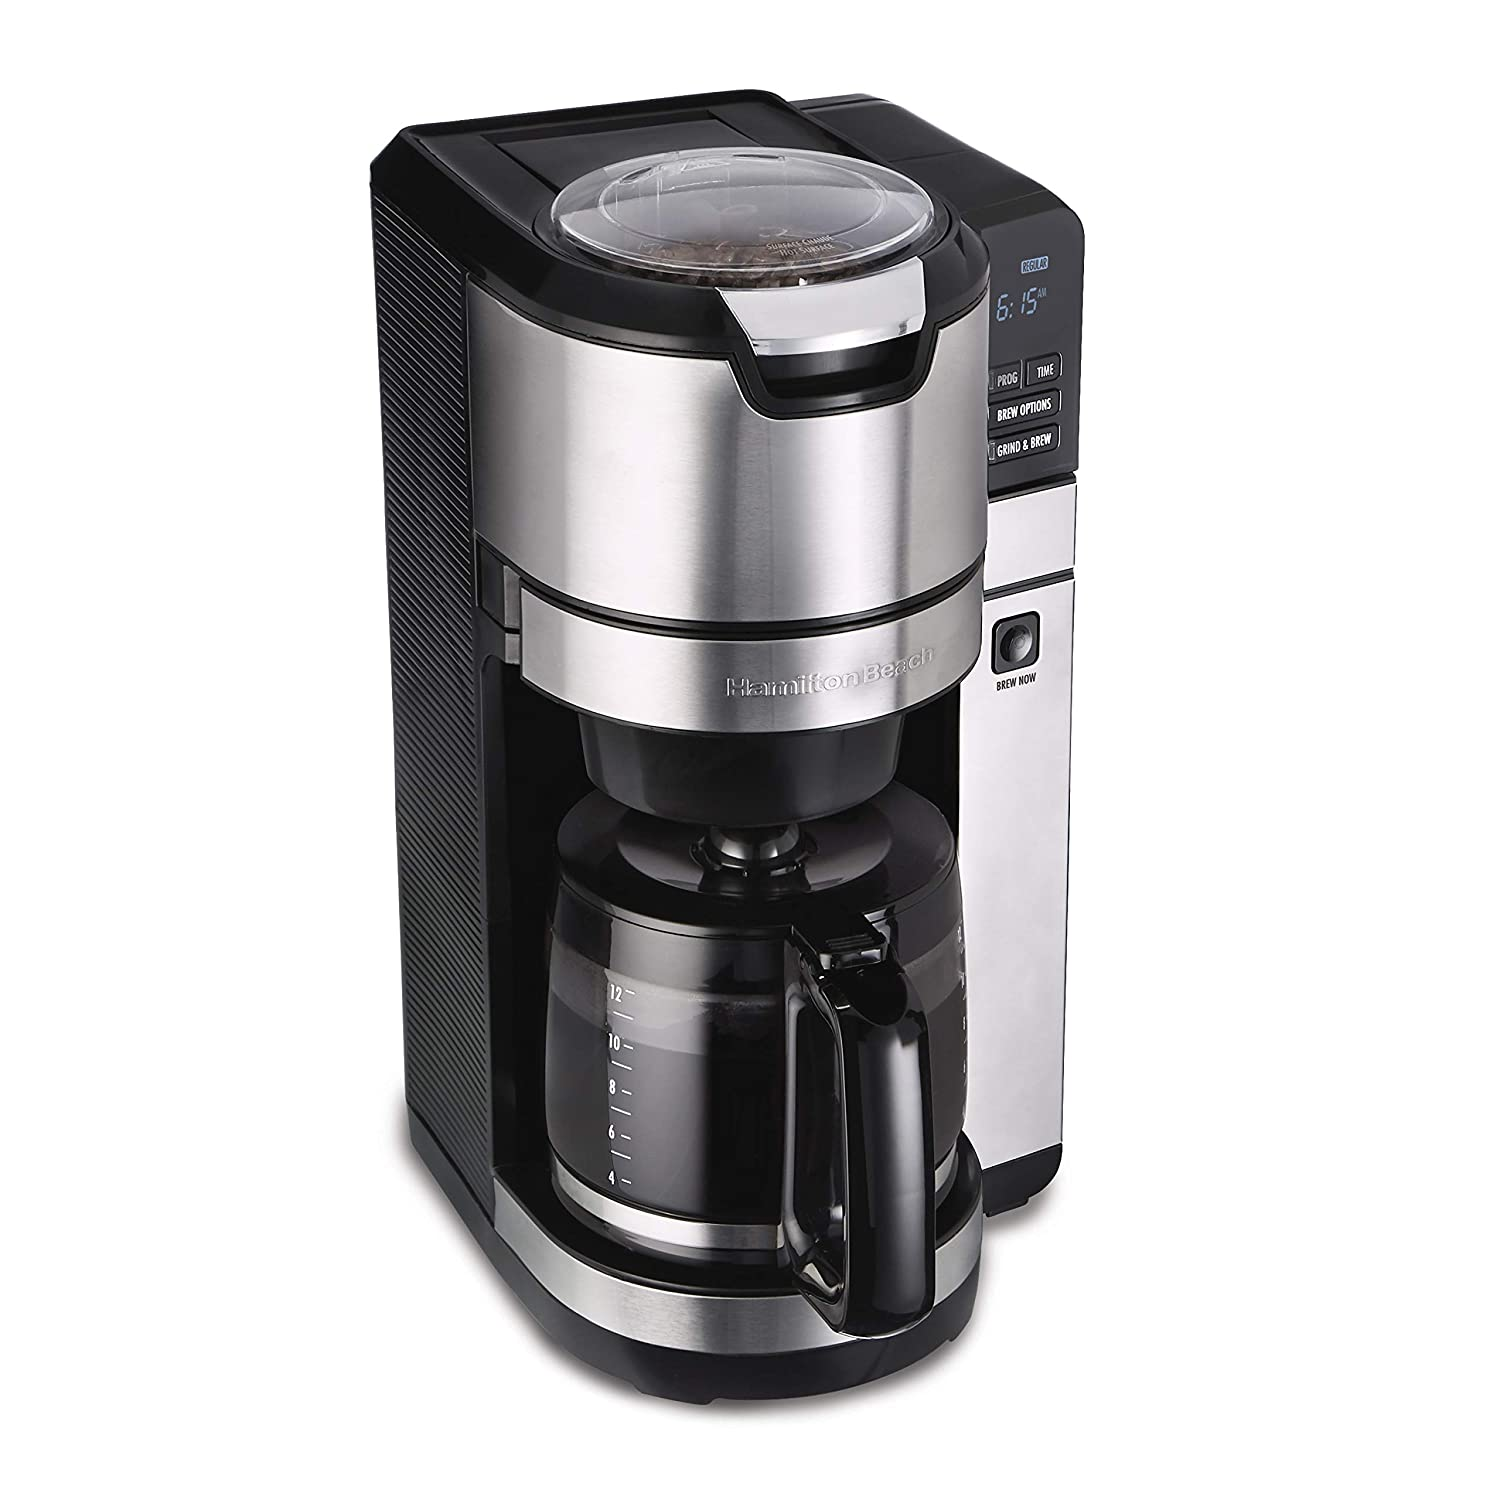 Hamilton Beach 45500 Grind and Brew Programmable 12 Cup Maker with Built-in Auto-Rinsing Coffee Grinder, Glass Carafe